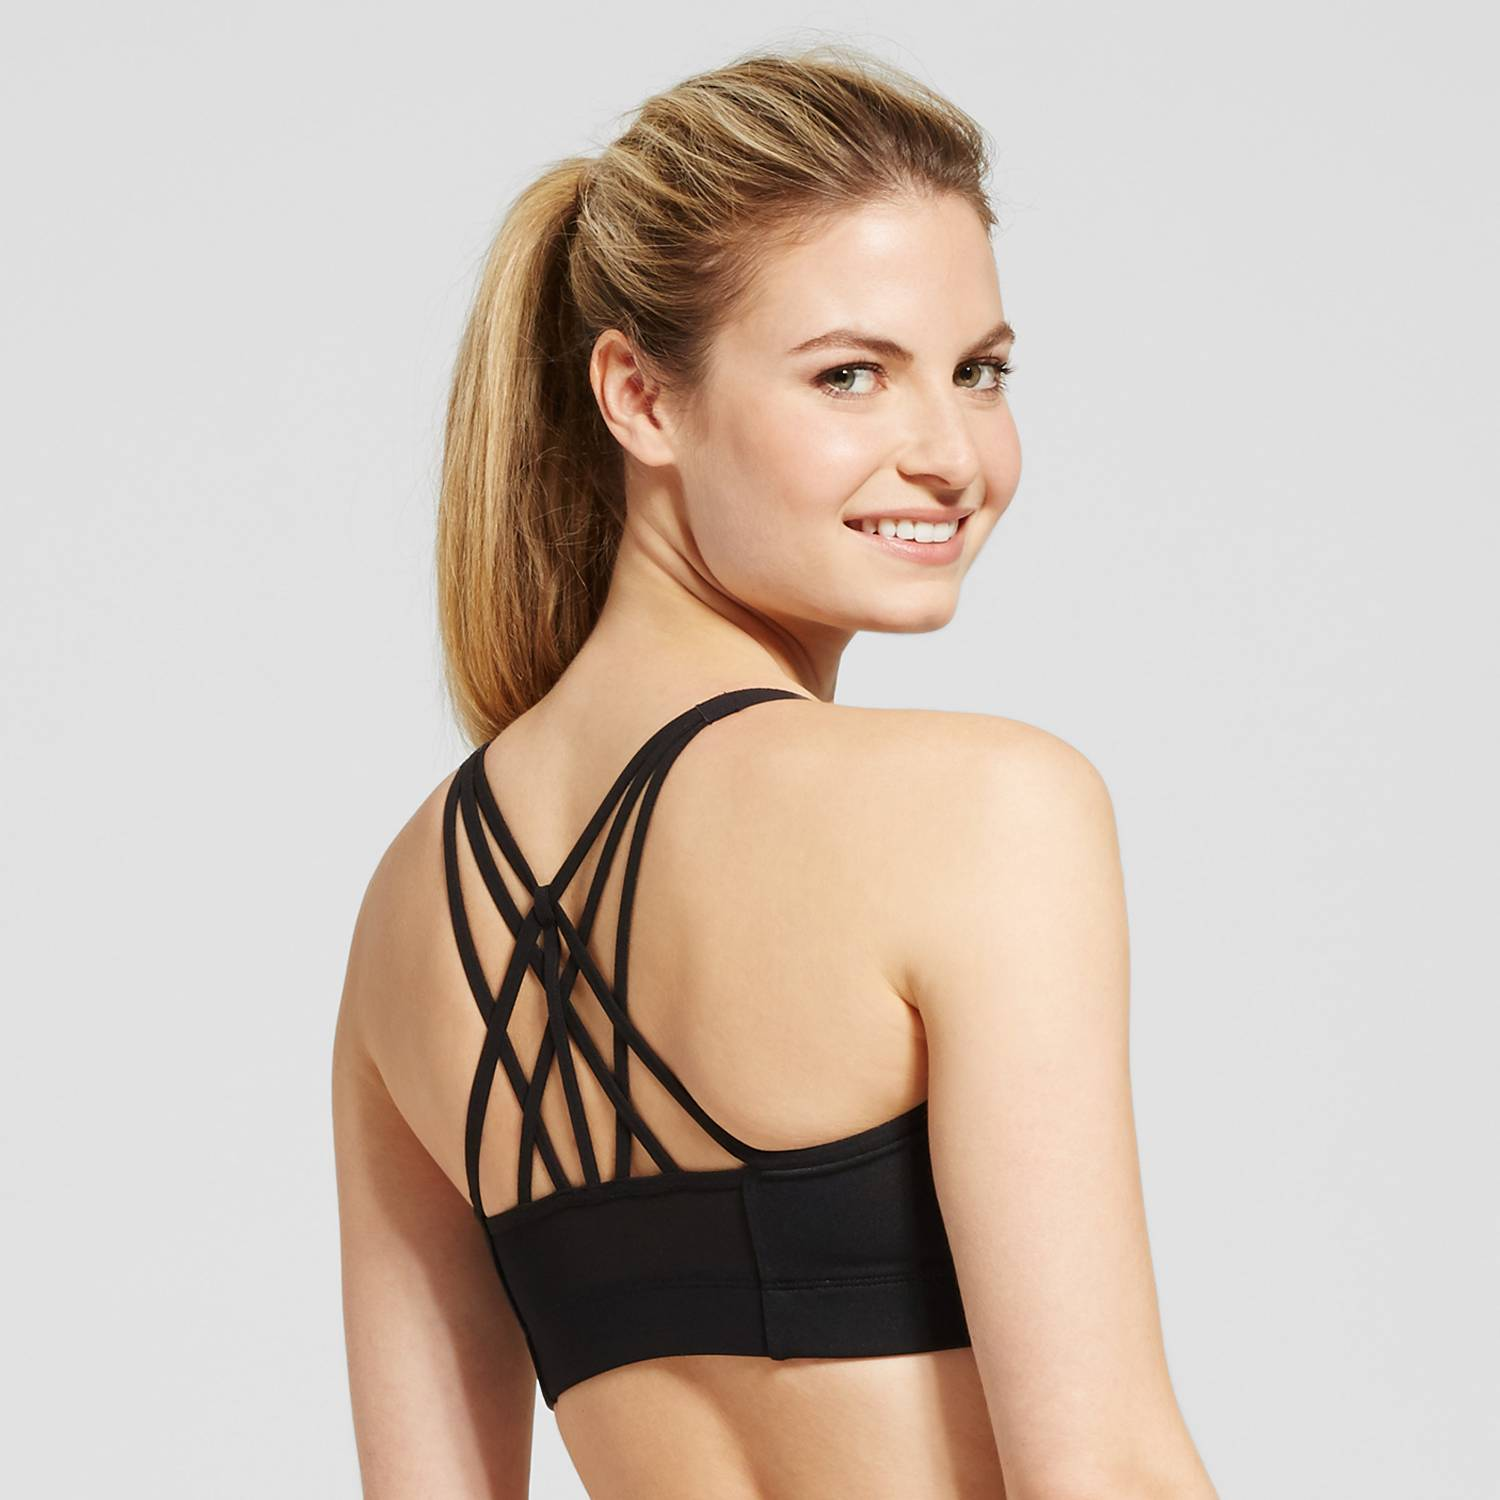 c09f97a54e Sports Bras By Price